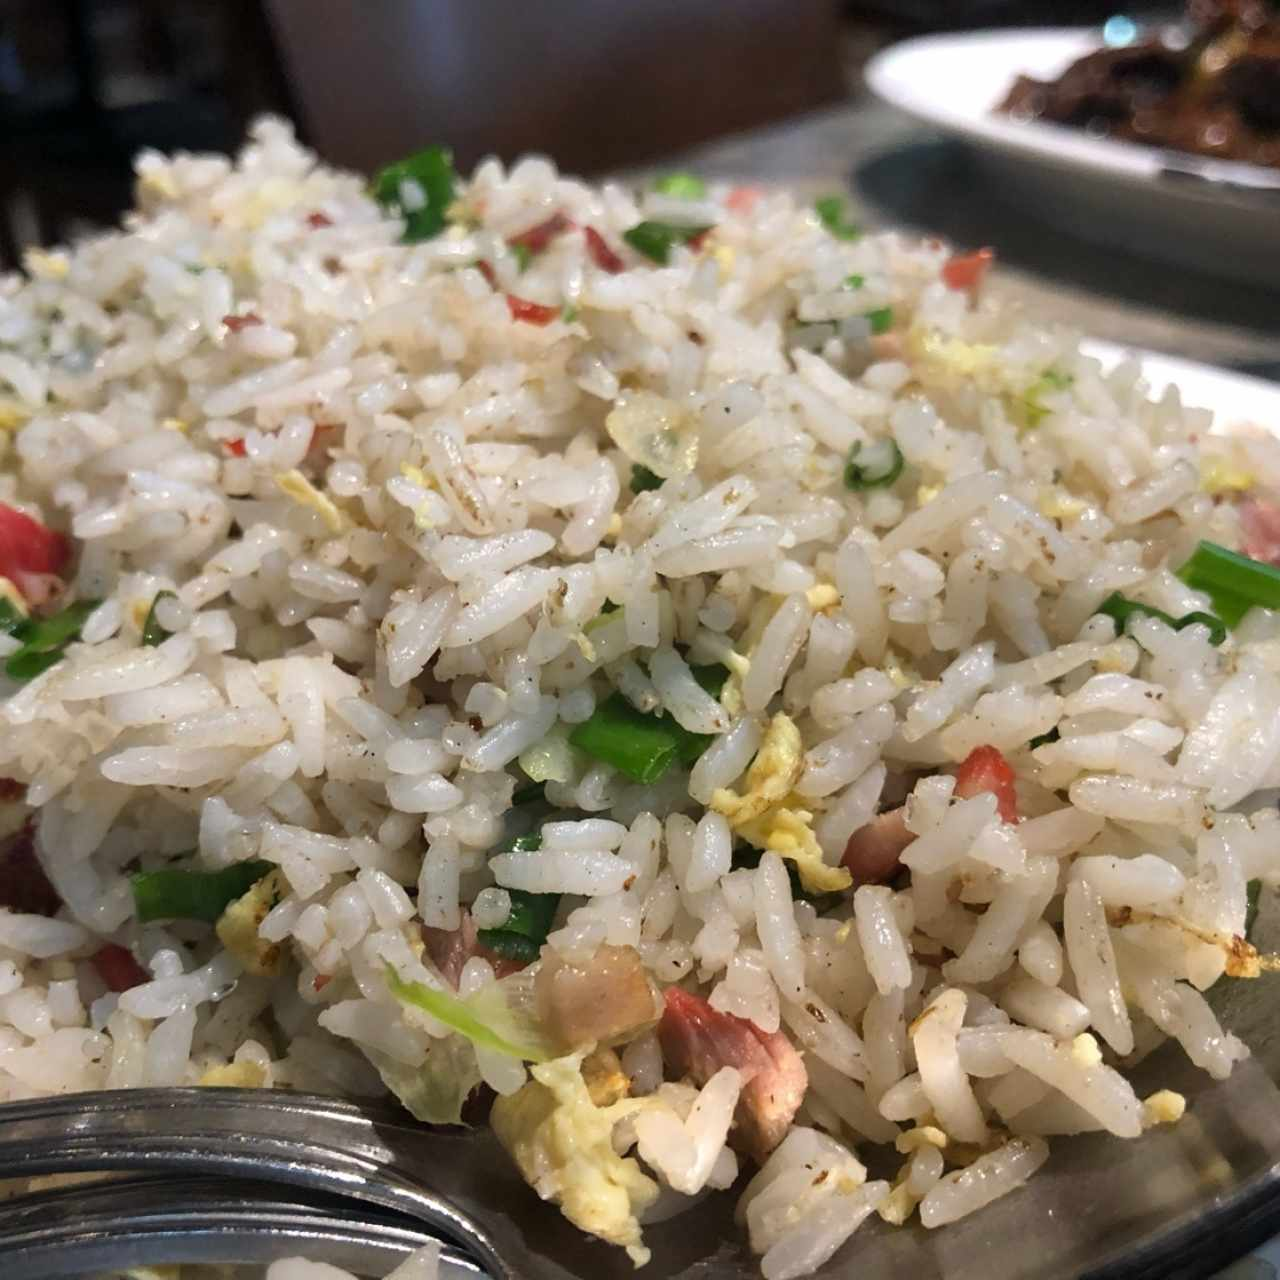 arroz kowloon